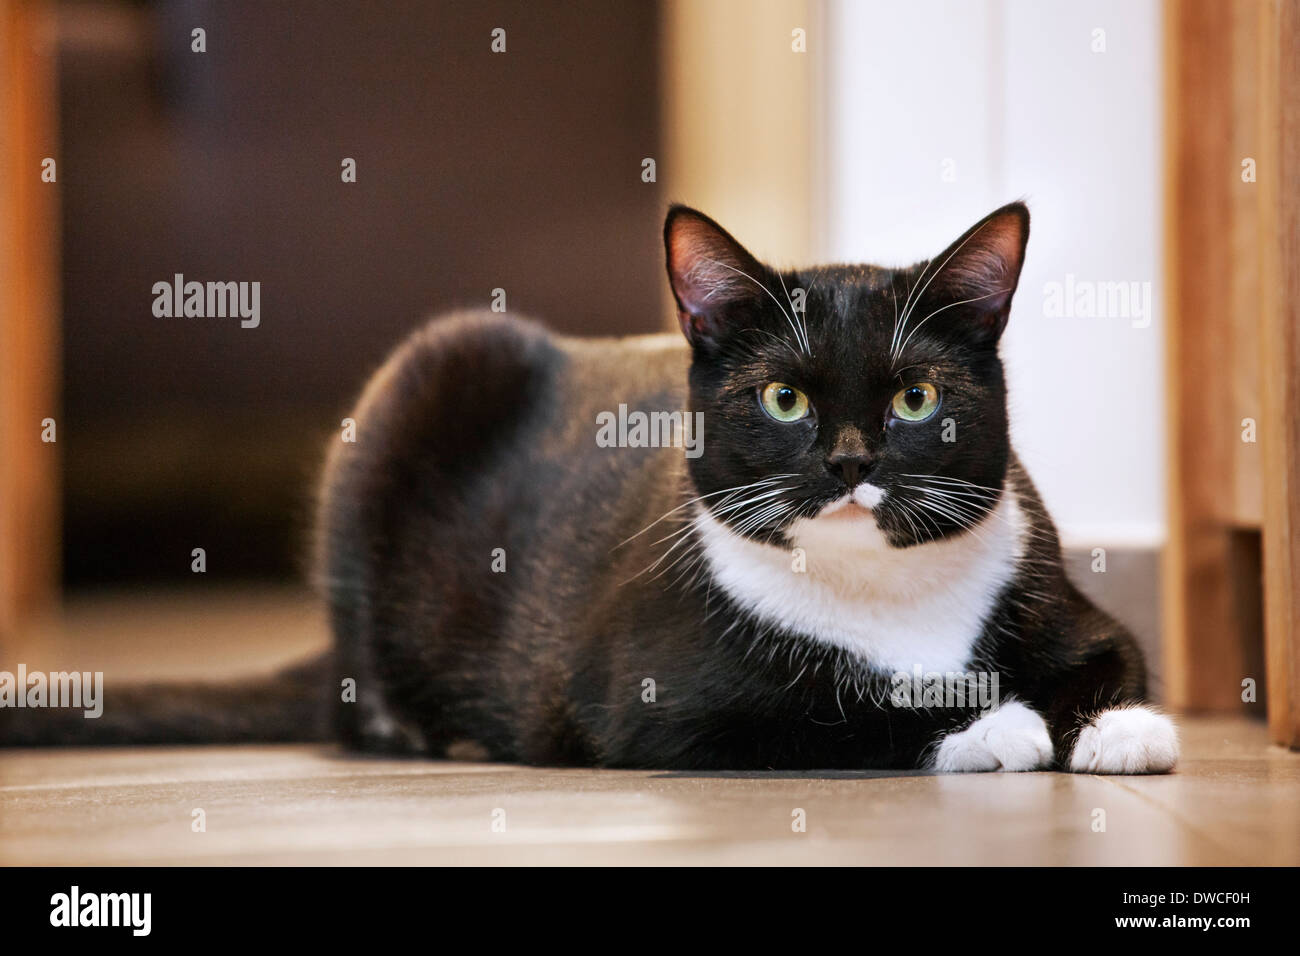 Portrait of tuxedo cat, bicolor domestic cat with a white and black coat resting on the floor in house - Stock Image